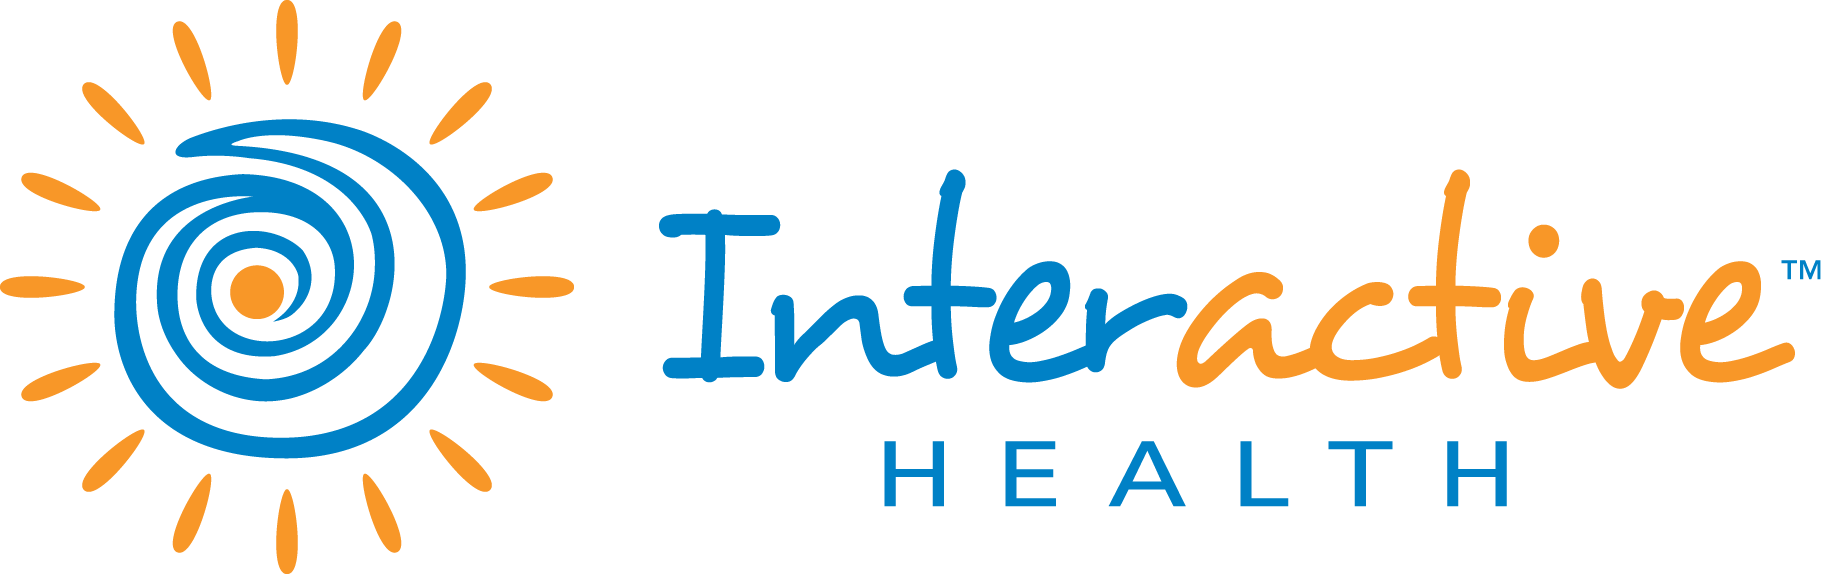 Interactive Health after logo